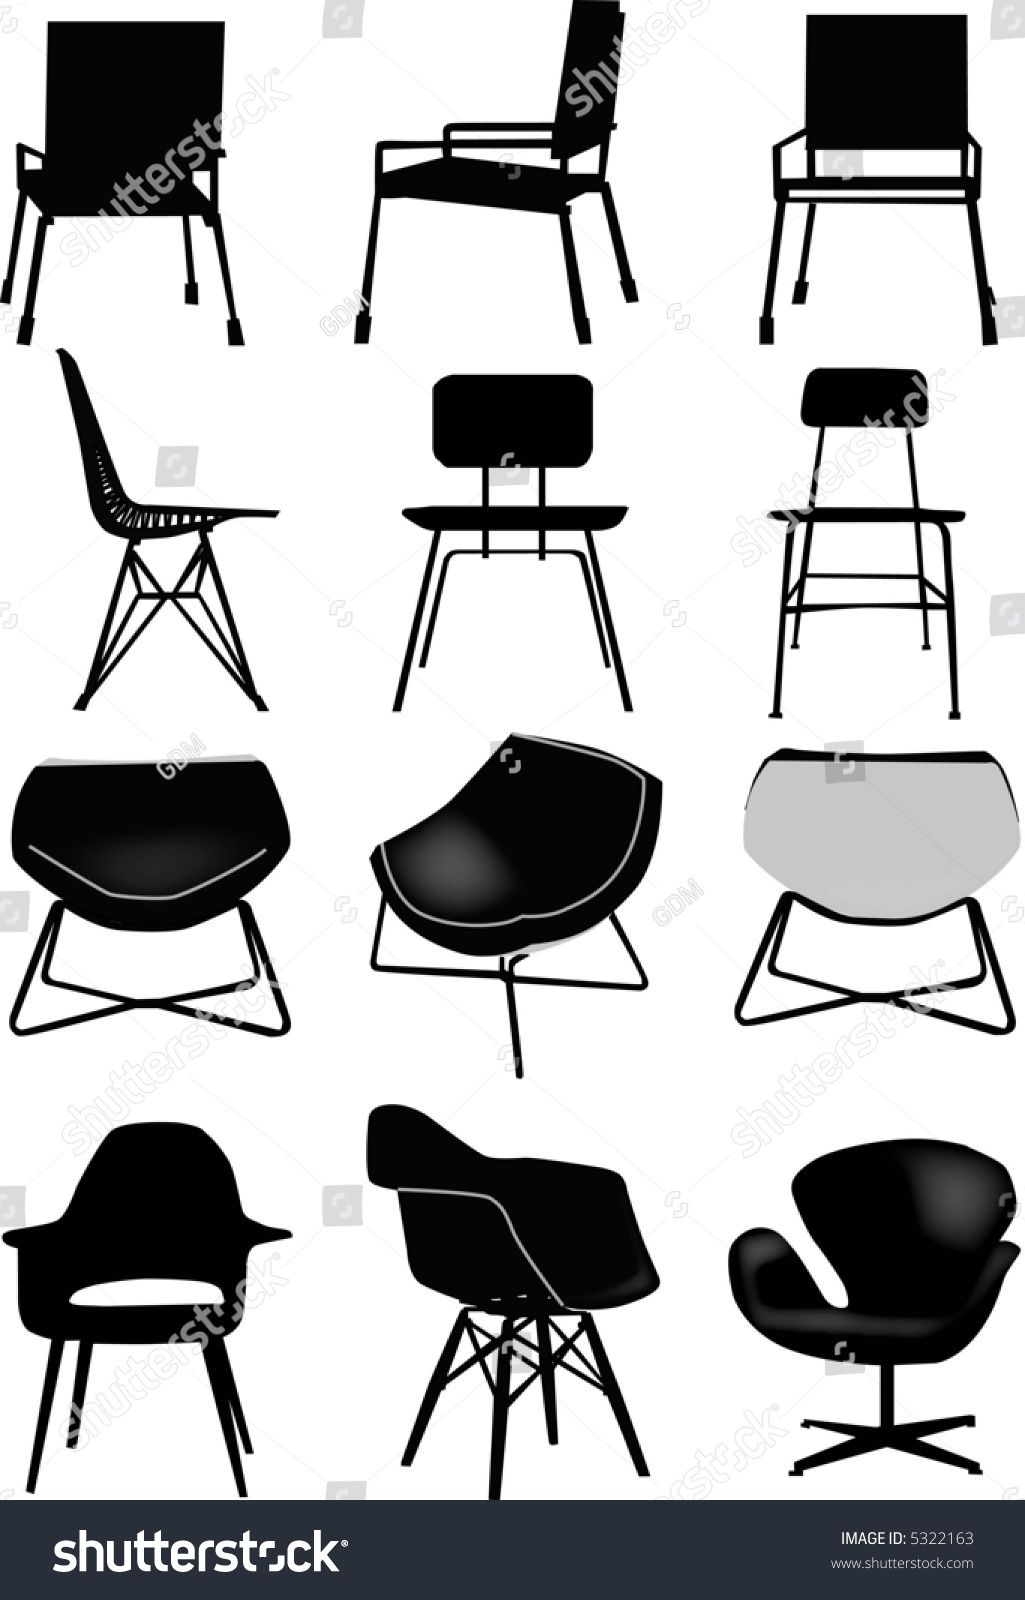 Vector Collection Of Design Chair Ad Affiliate Collection Vector Chair Design In 2020 Chair Design Design Graphic Design Inspiration